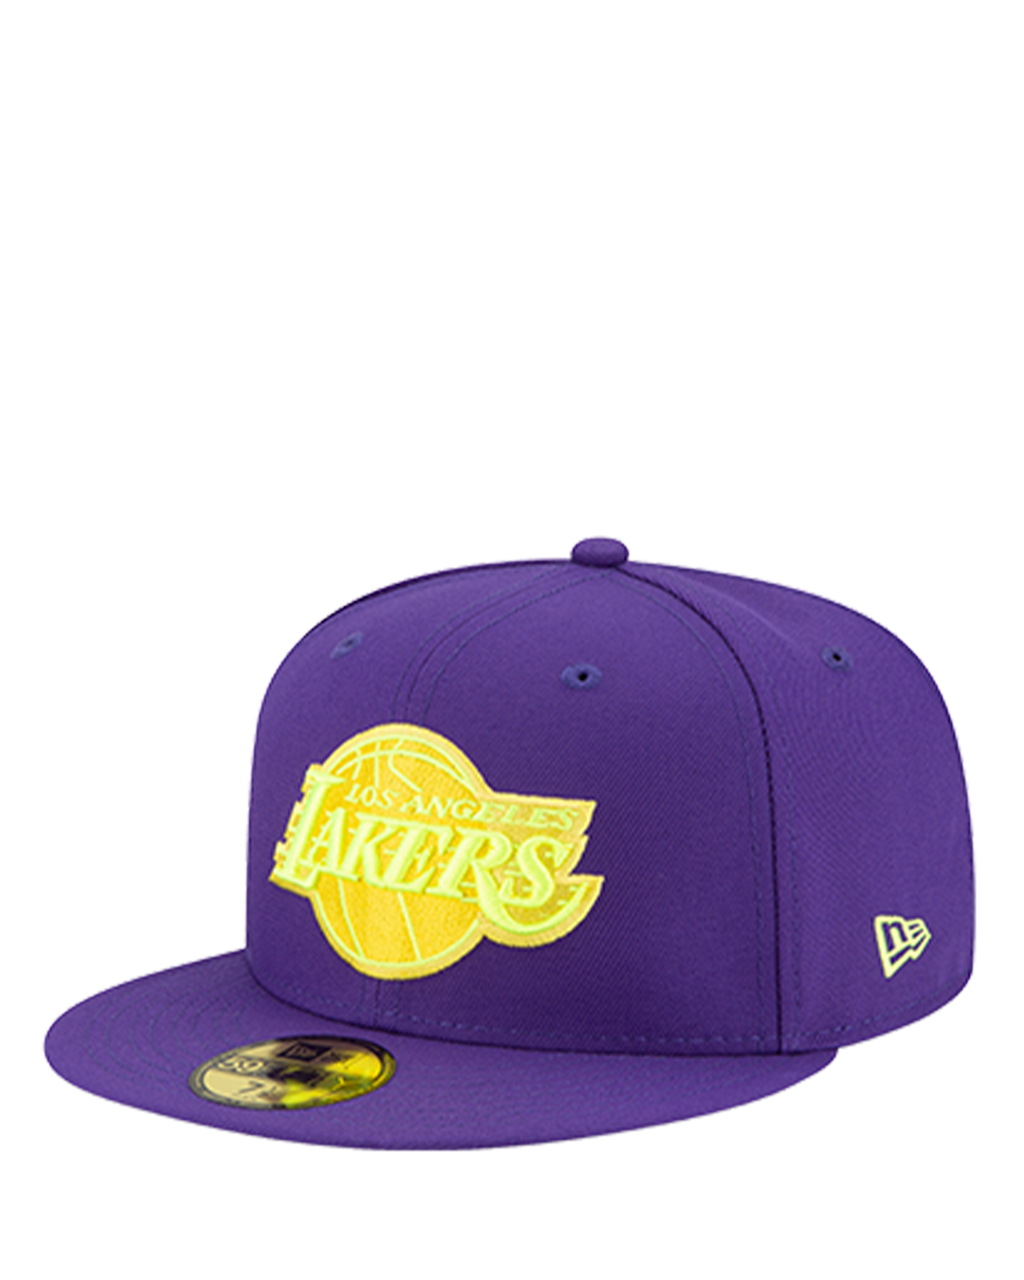 Los Angeles Lakers 59FIFTY Logo Shaded Fitted Cap - Black